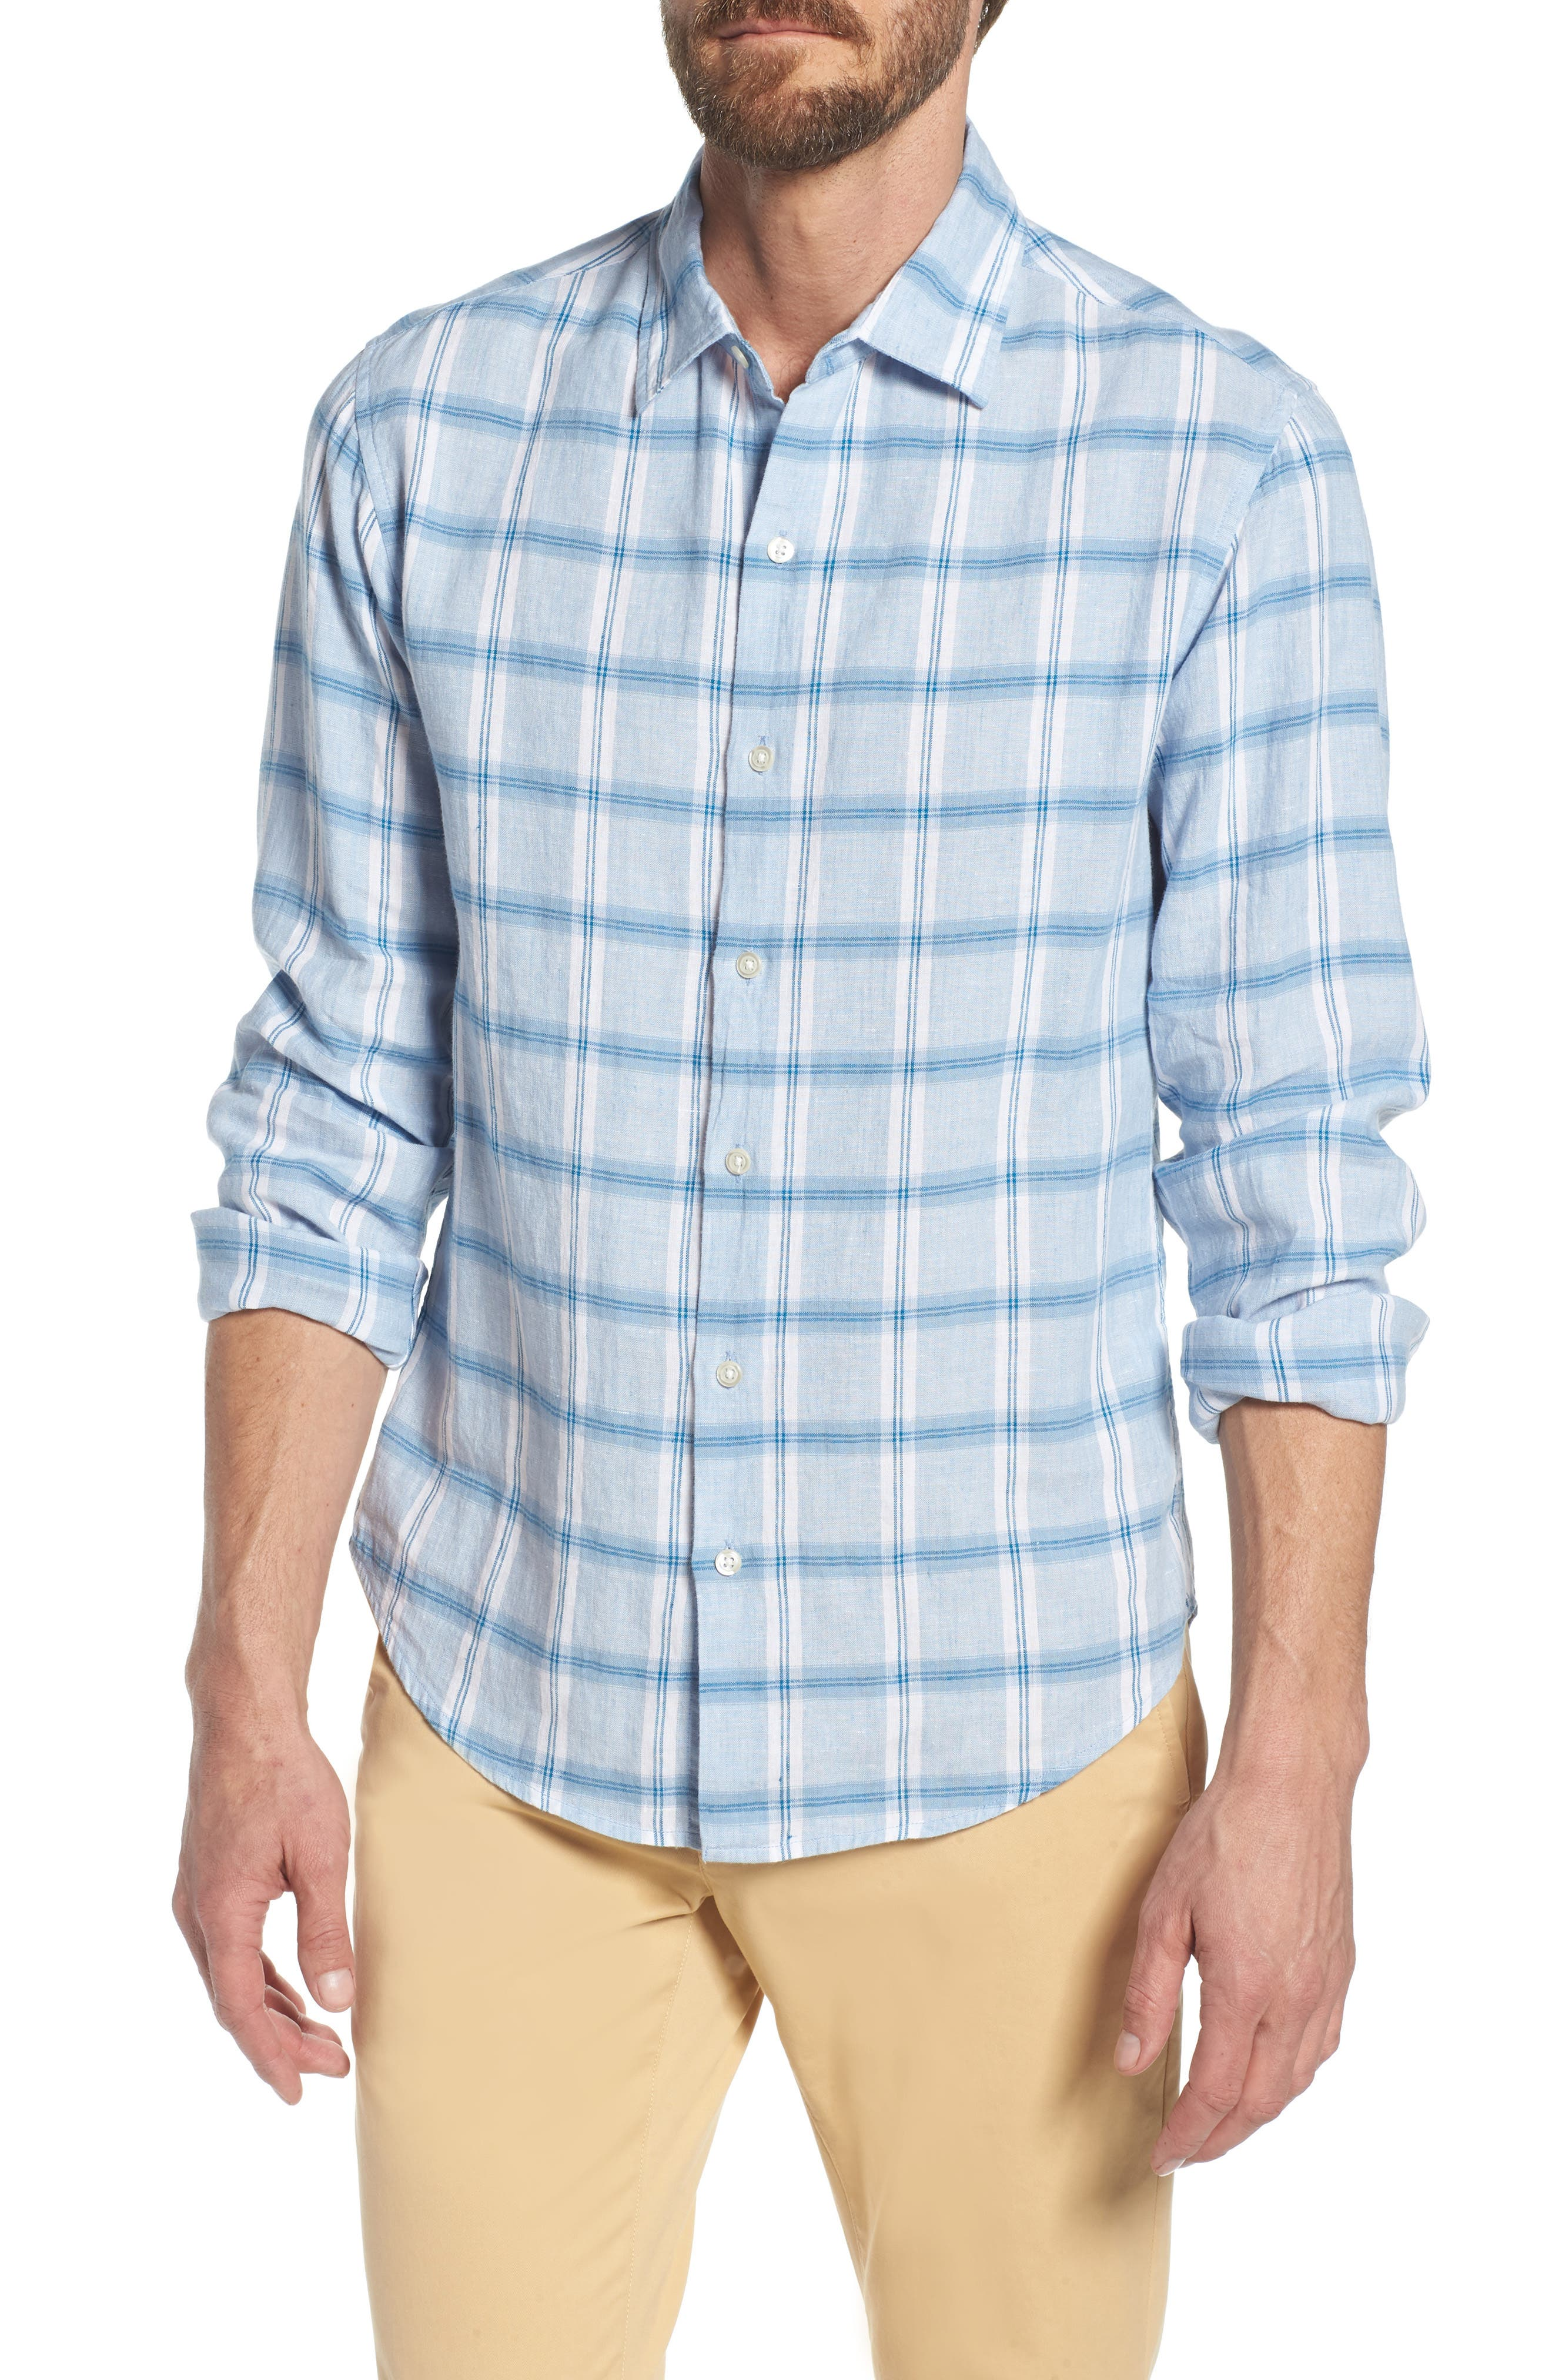 Alternate Image 1 Selected - Bonobos Slim Fit Plaid Linen & Cotton Sport Shirt